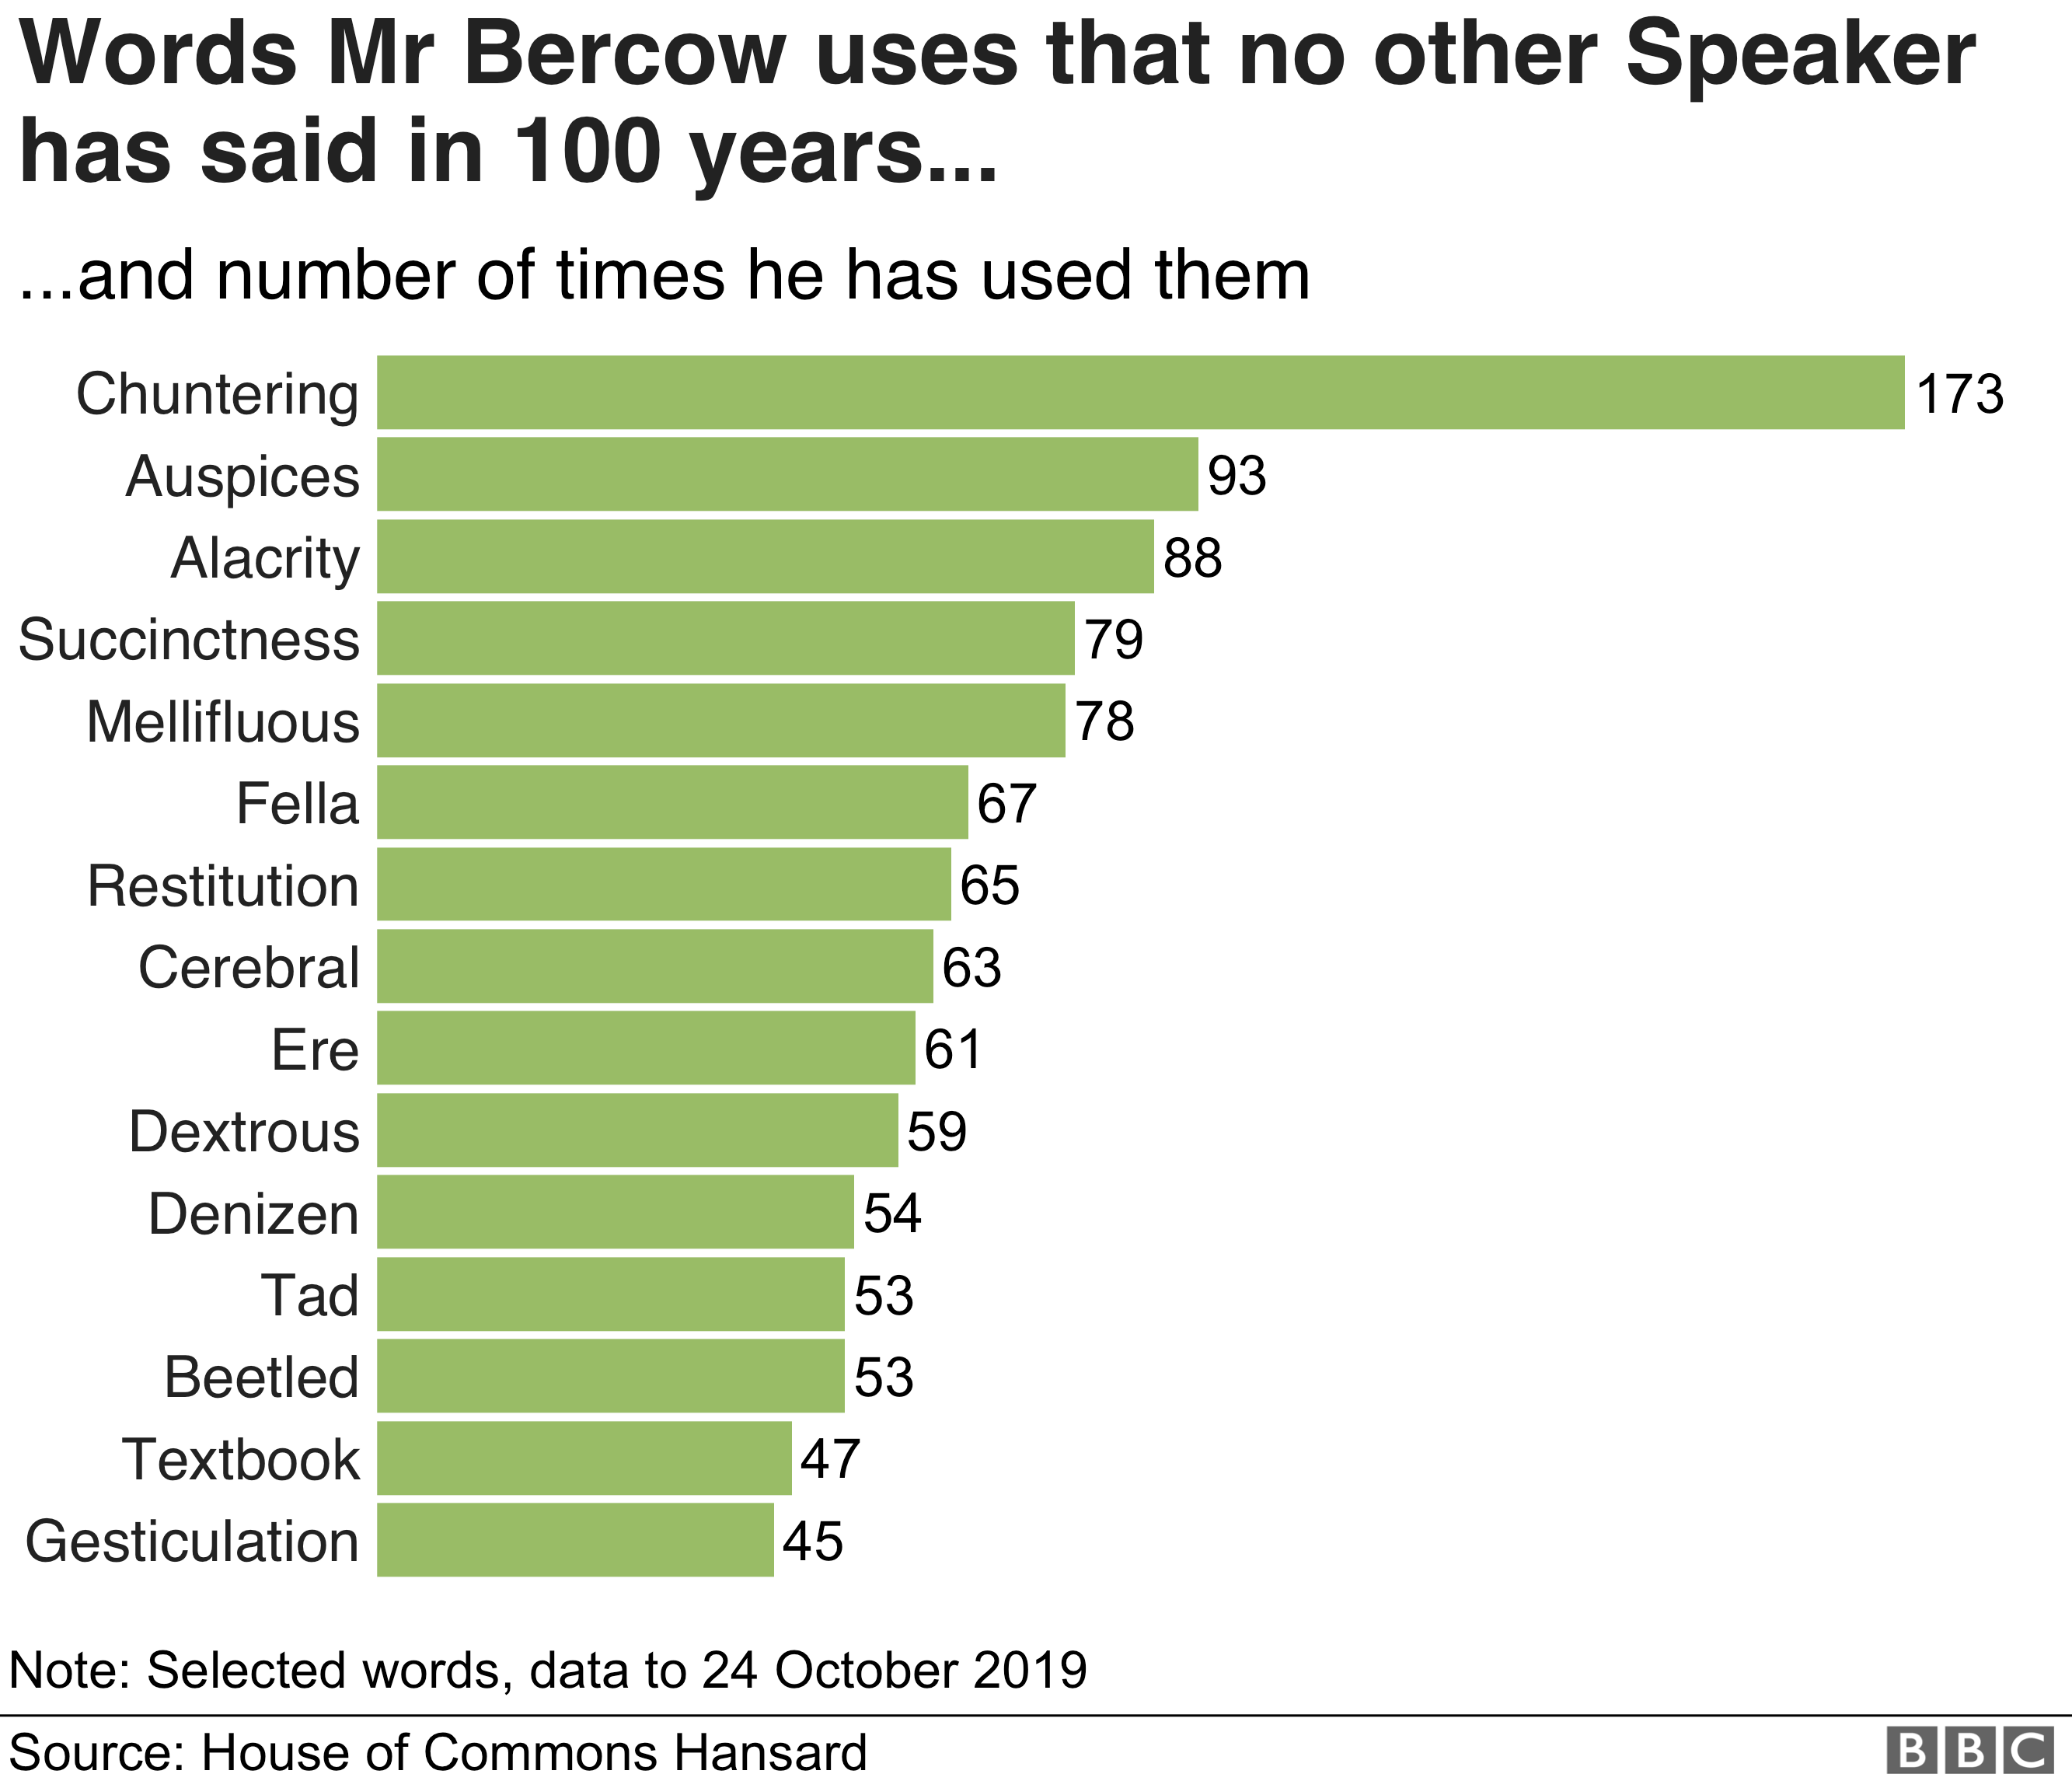 Chart showing unusual words chosen by Mr Bercow, including 'chuntering'